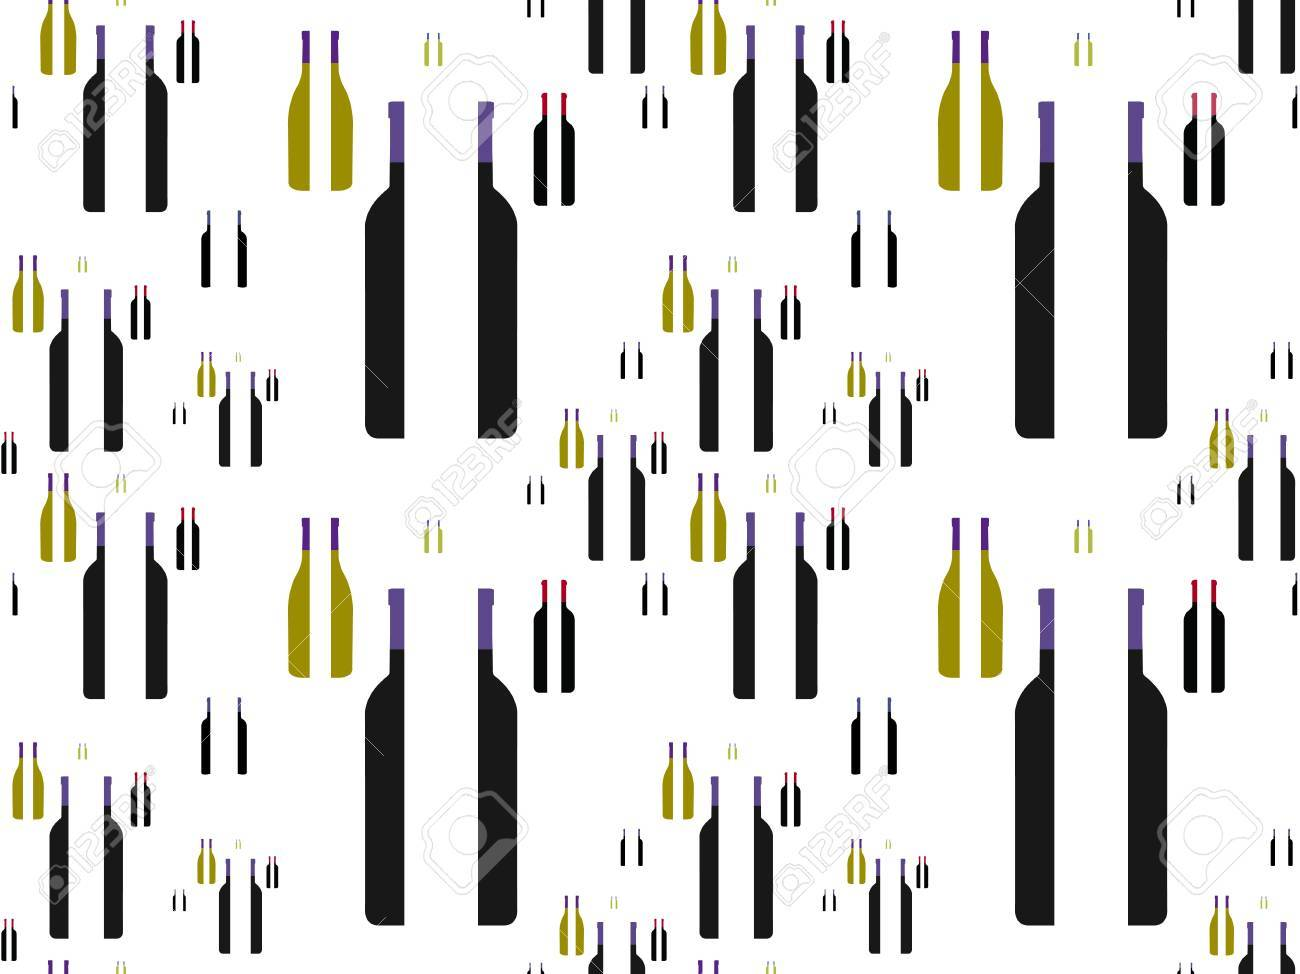 Bottles of Wine in Halves Background Seamless Pattern Stock Vector - 15401178